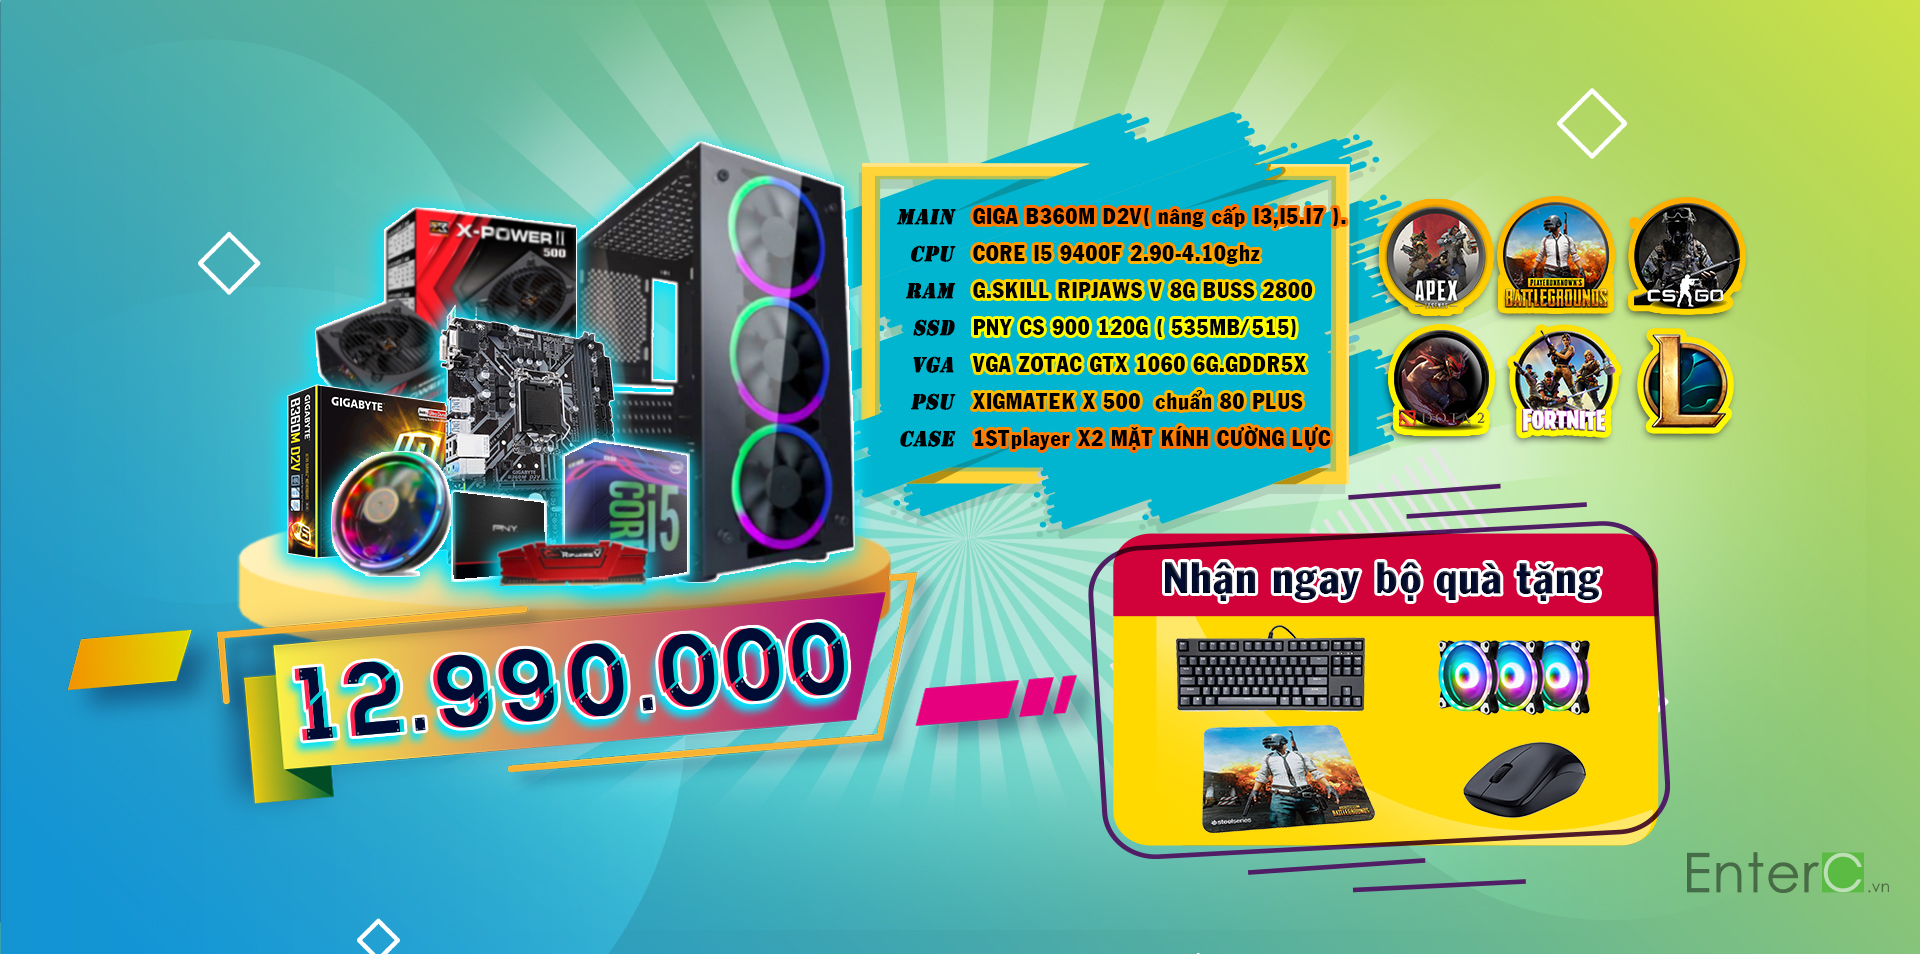 Enter C Việt Nam Baner gaming 3